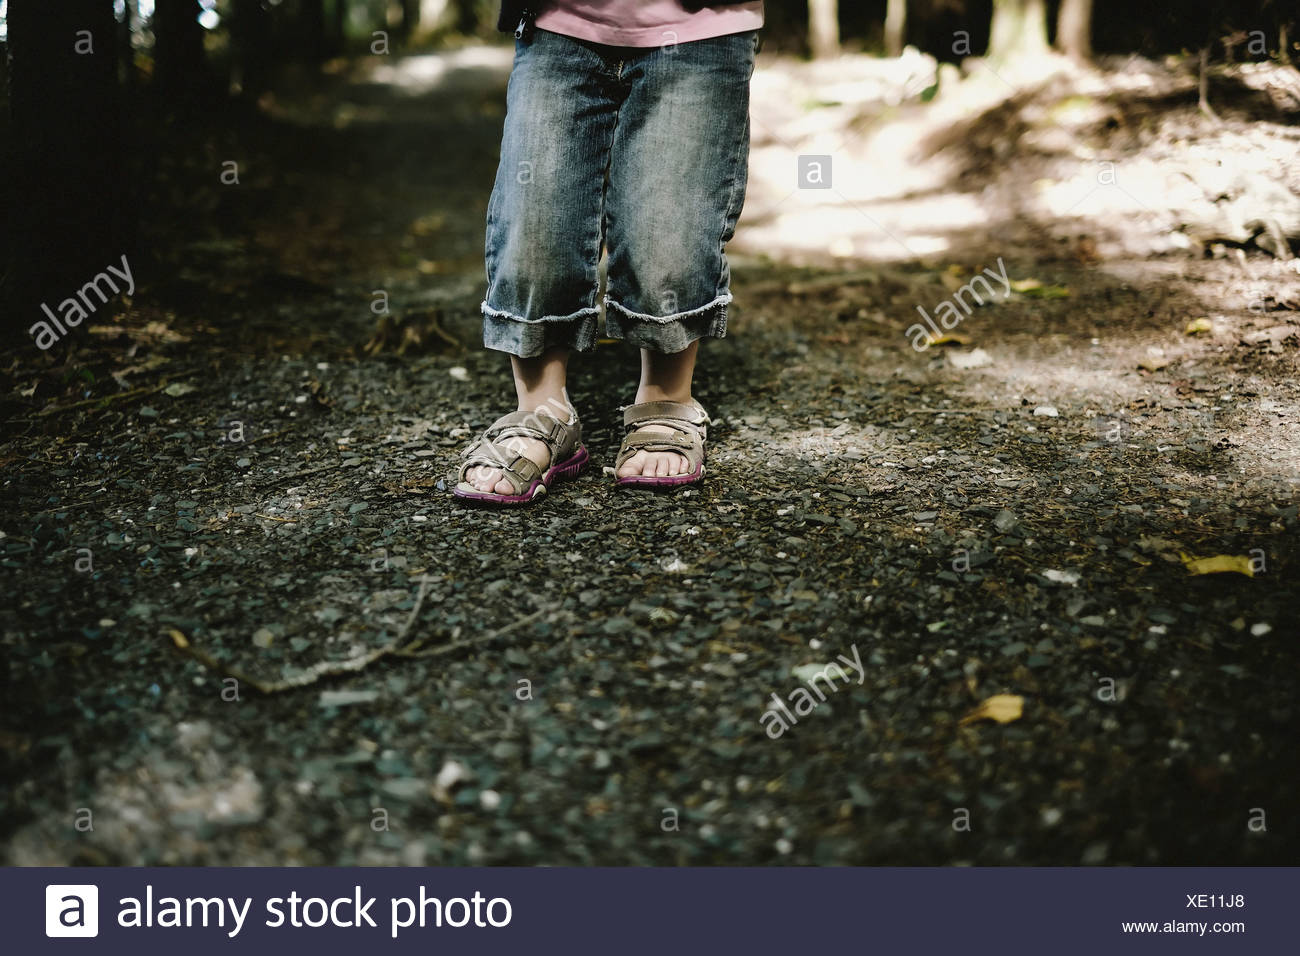 d4963a243f924e Close-Up Of Young Girl s Feet In Sandals On A Forest Trail Thetford Mines